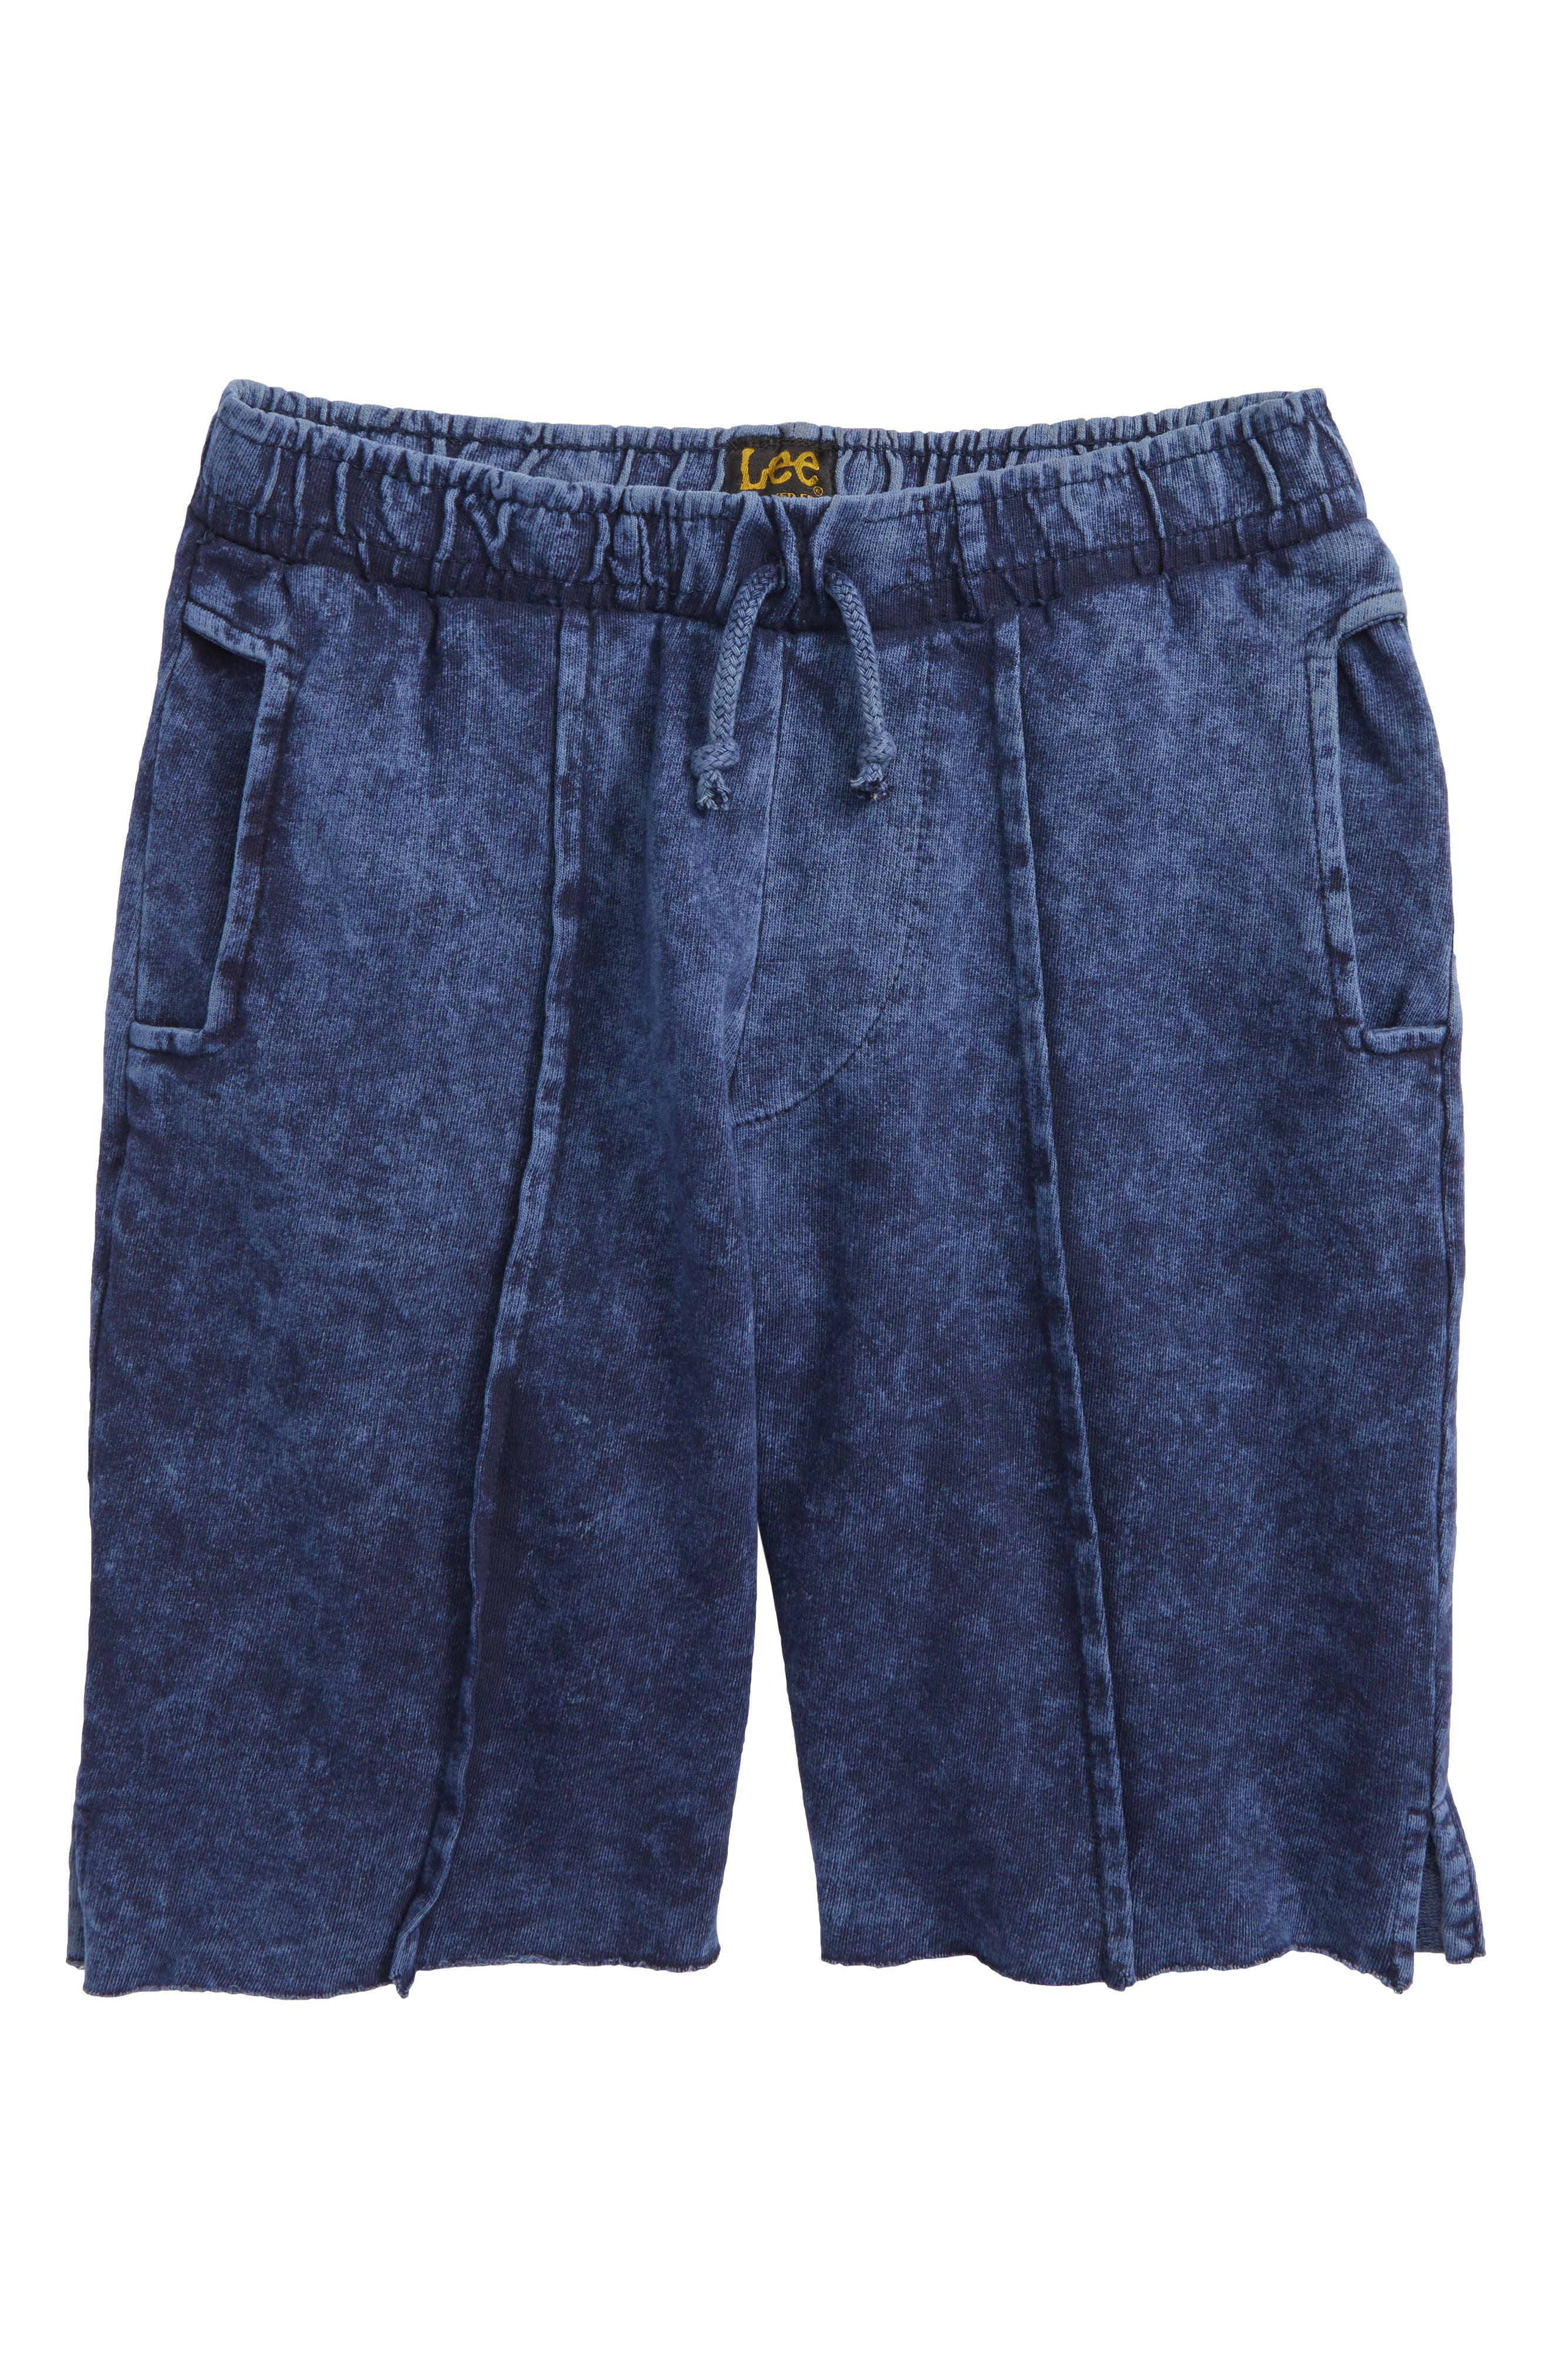 Acid Wash Pull-On Denim Shorts,                             Main thumbnail 1, color,                             412